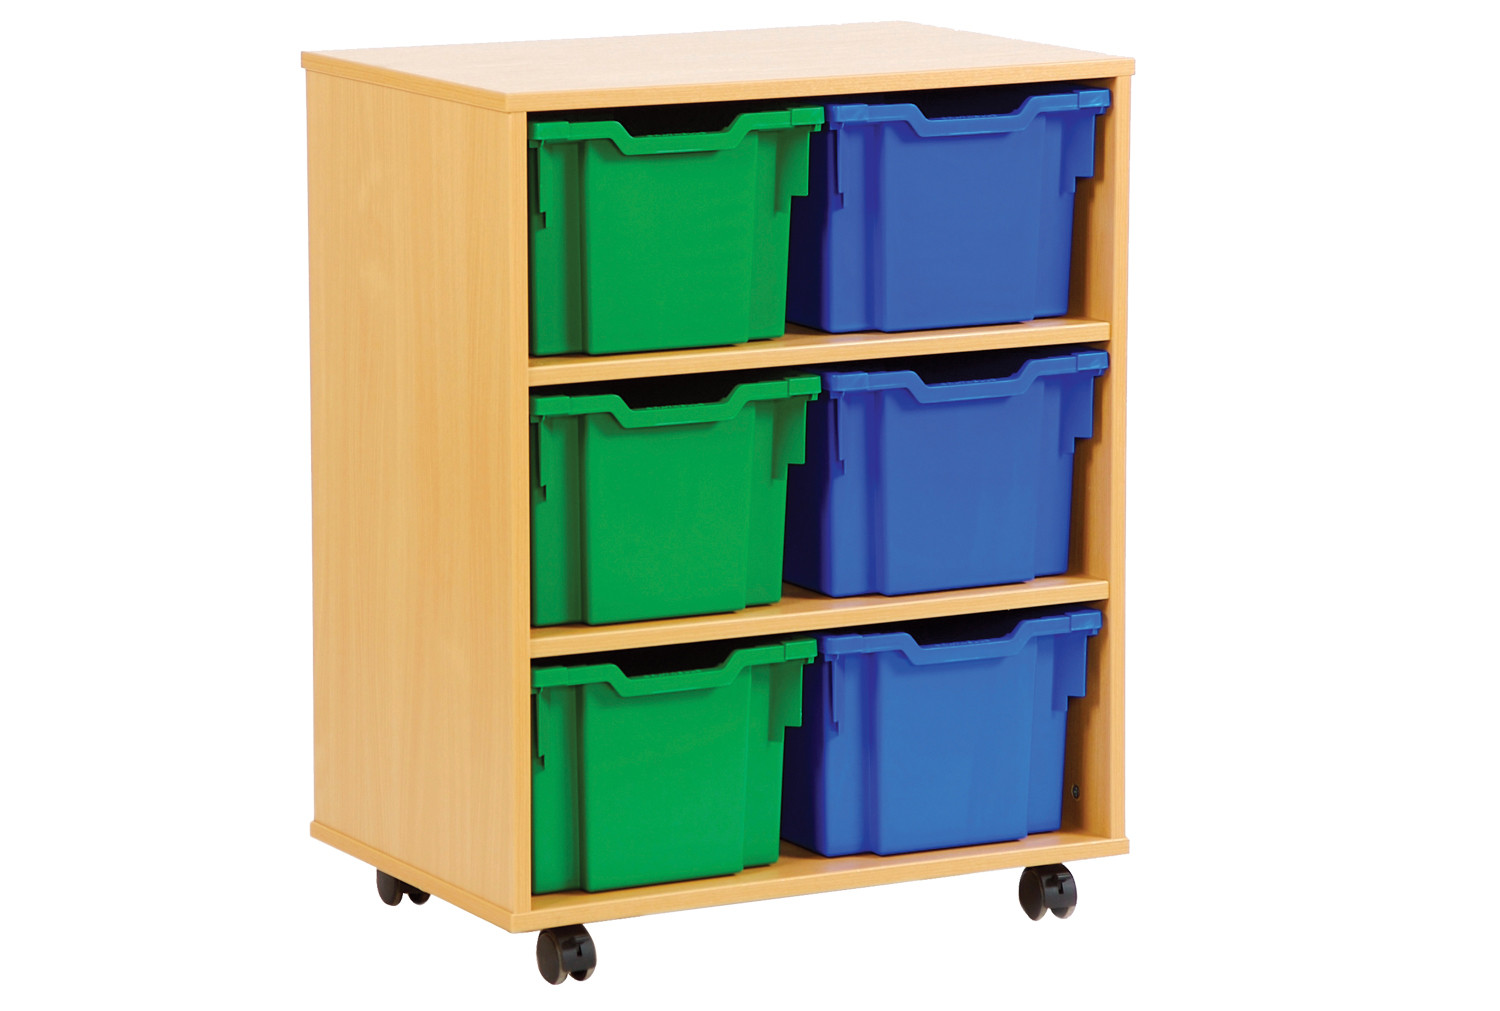 6 Jumbo Tray Storage Unit. Find Loads More Colours, Materials & Styles Online - Buy Office Furniture Online